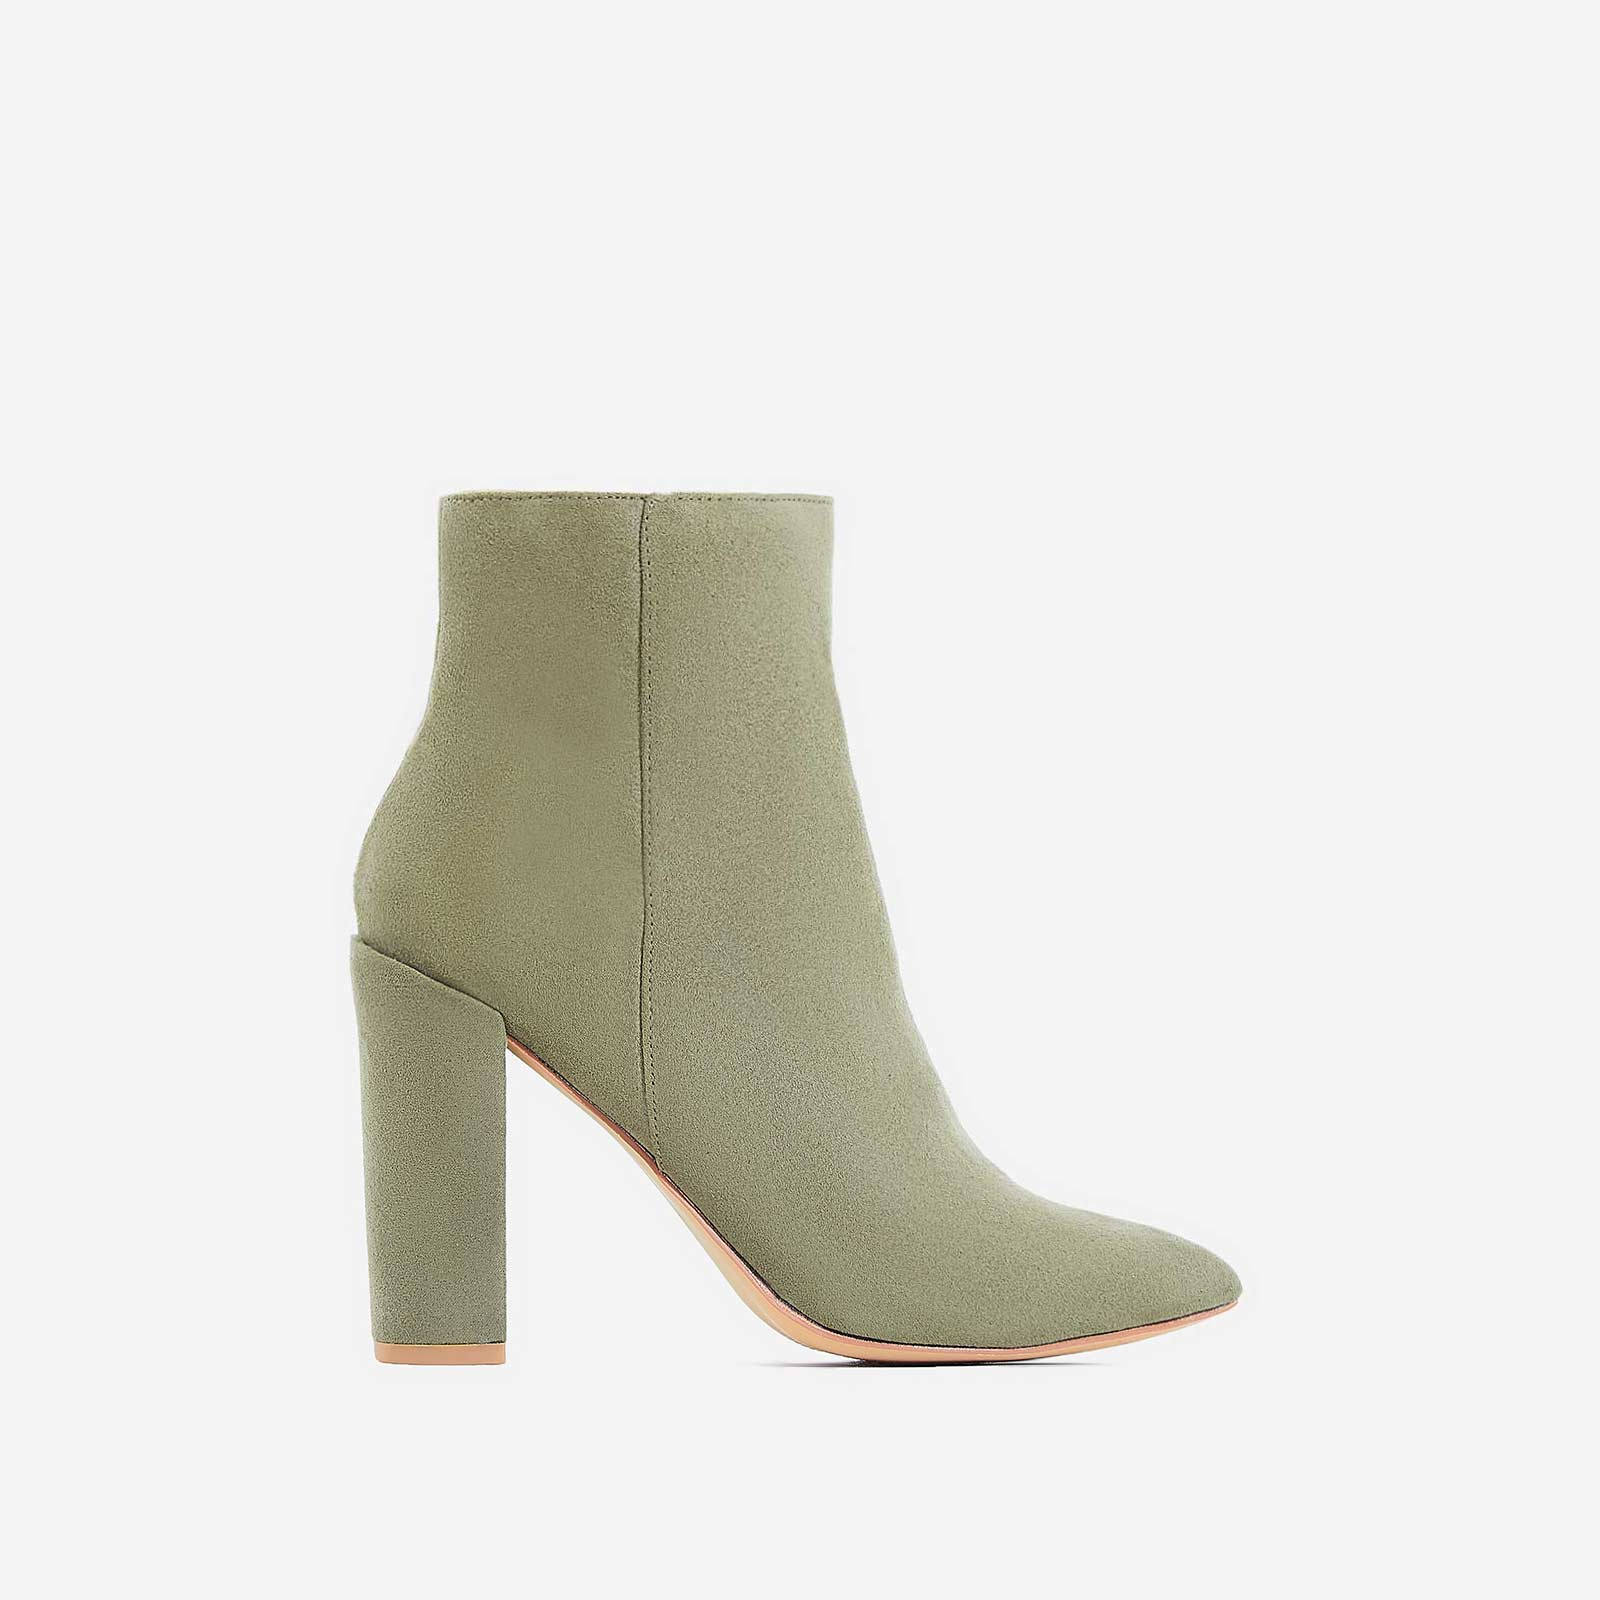 Diana Block Heel Ankle Boot In Khaki Faux Suede